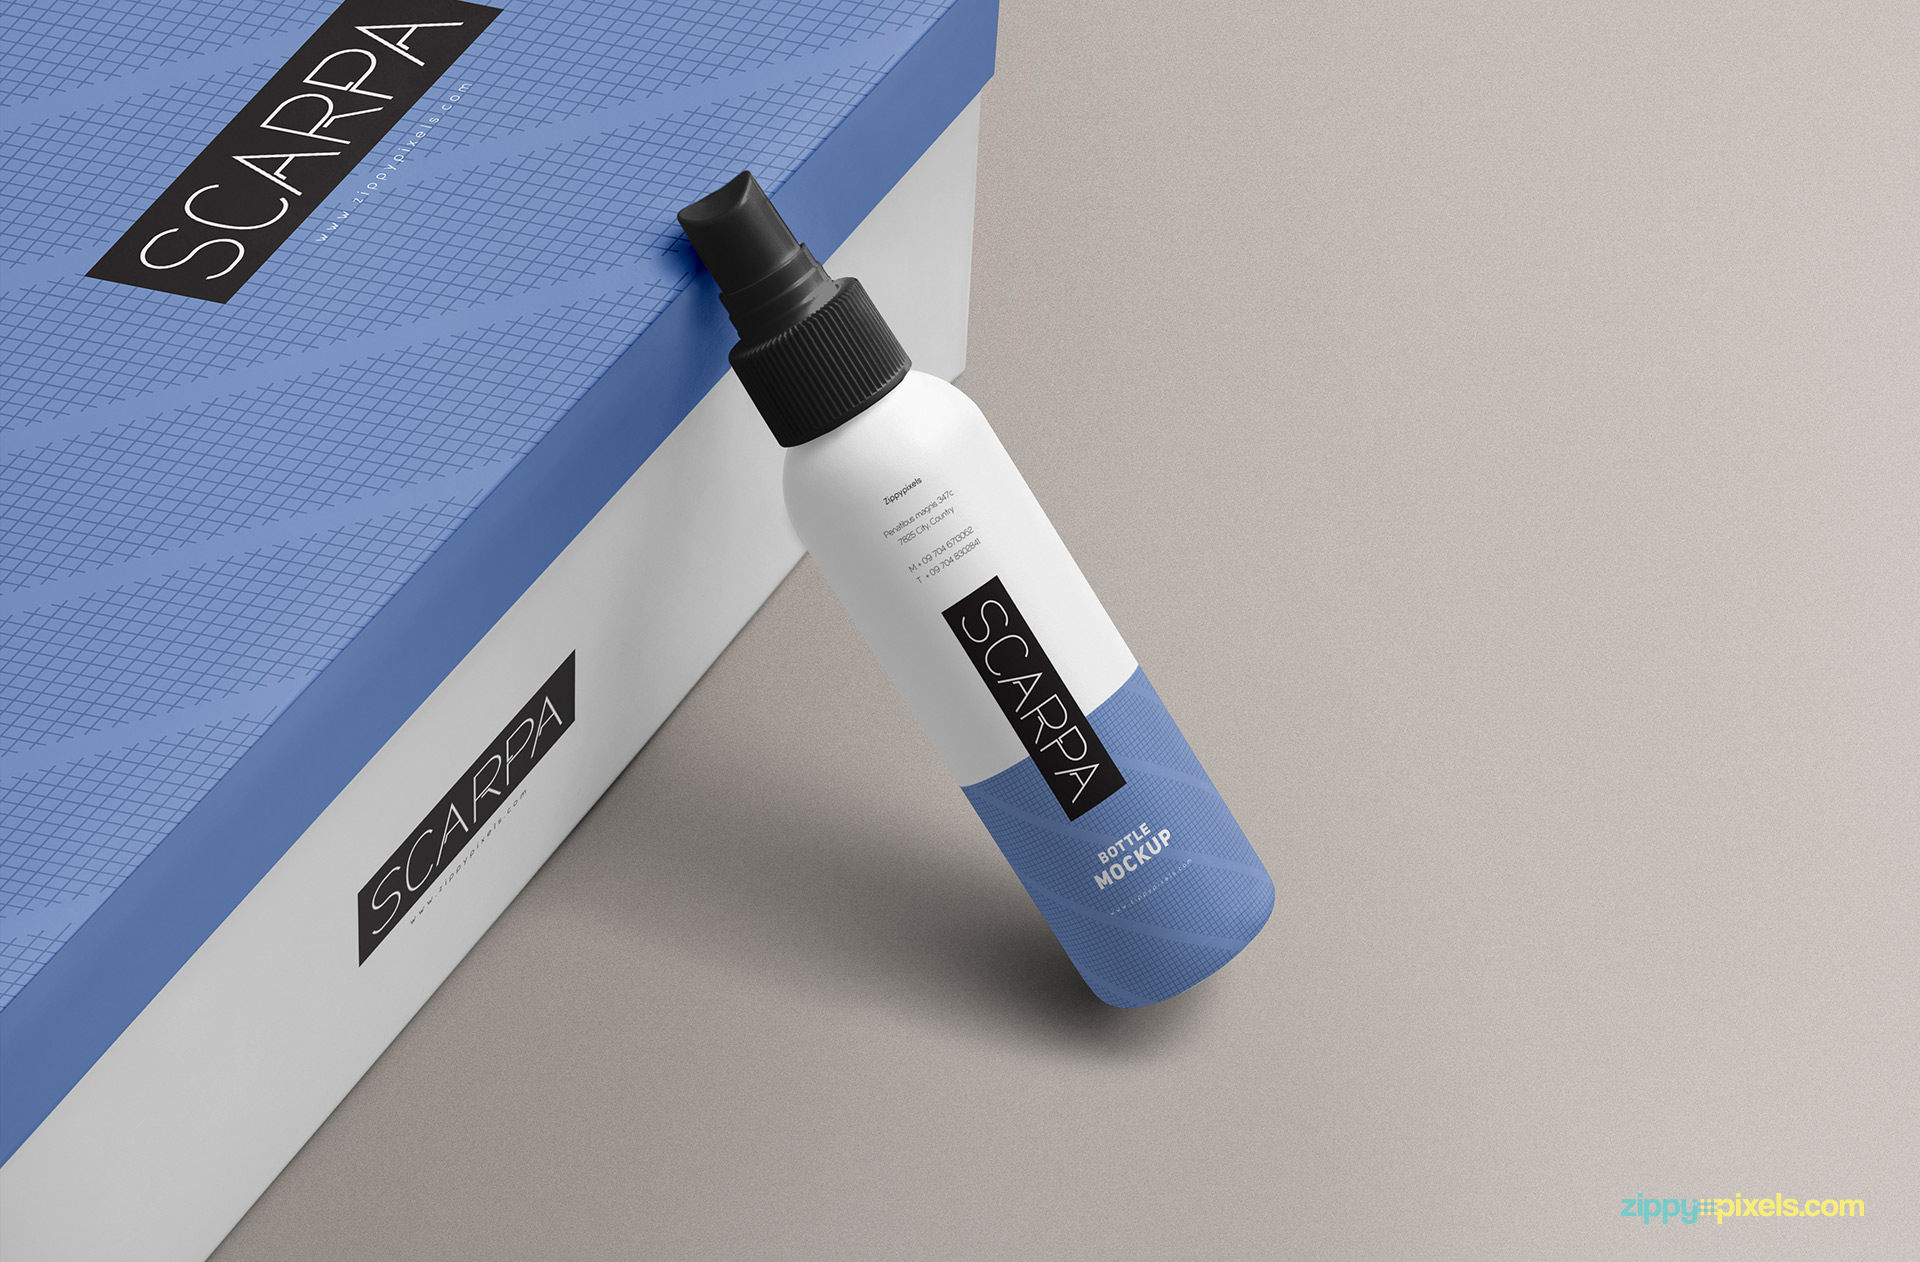 Free plastic spray bottle mockup with a box.